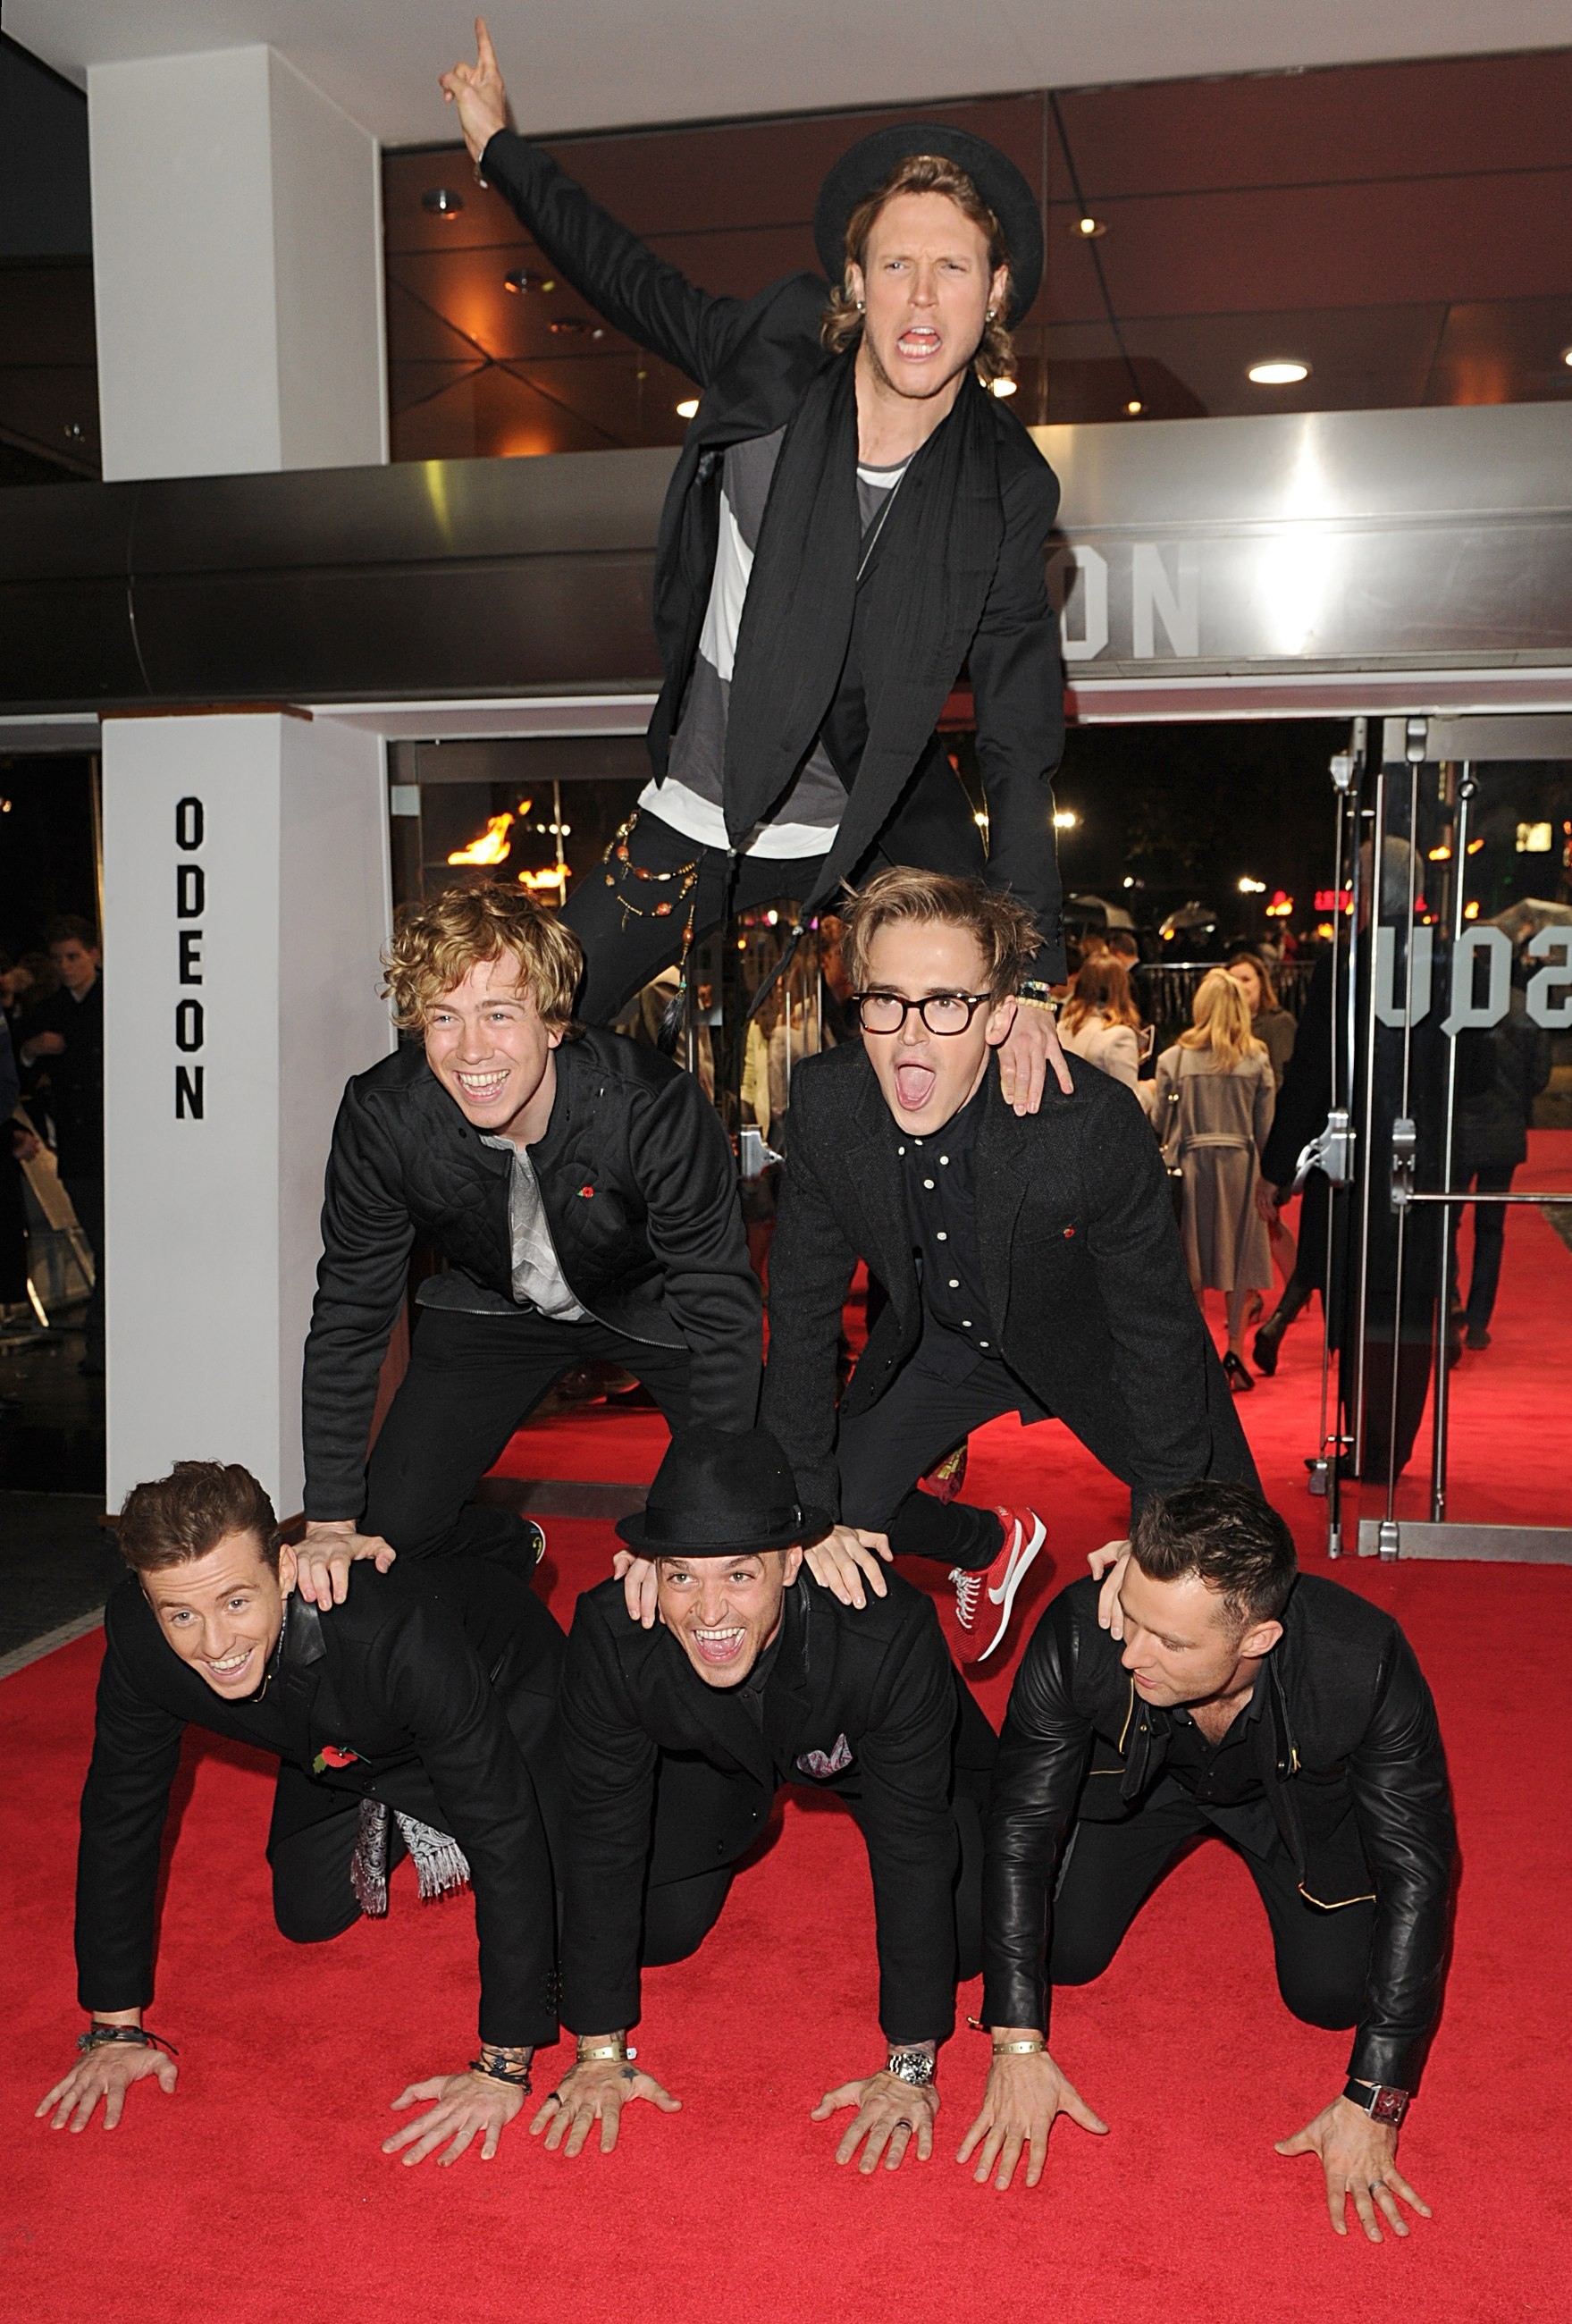 We've got McBusted to look forward to – but what other band mash-ups might work?